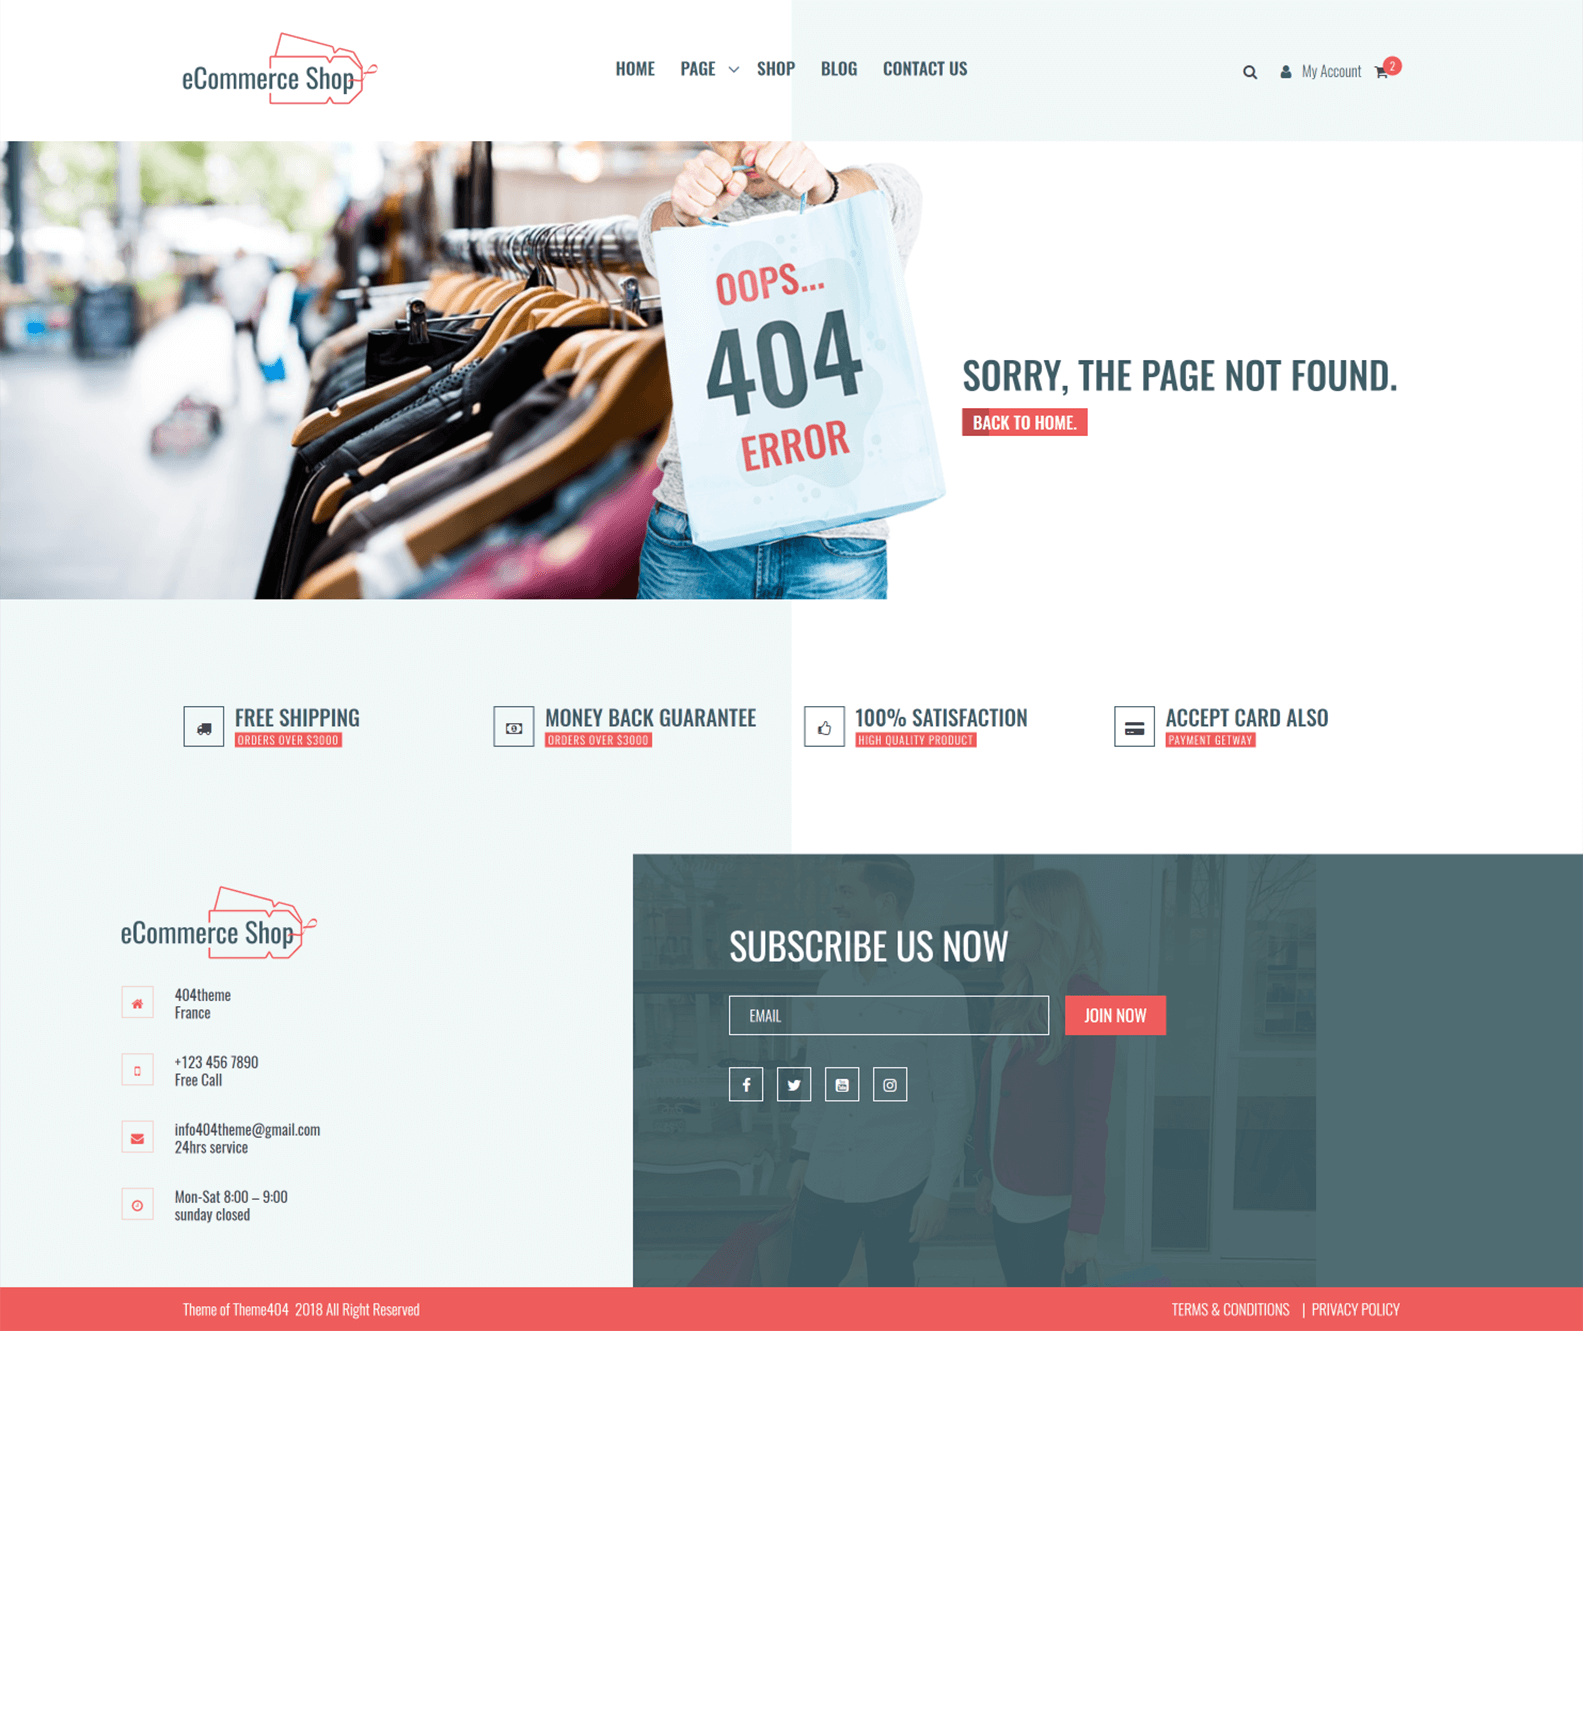 eCommerce Shop - Theme 404